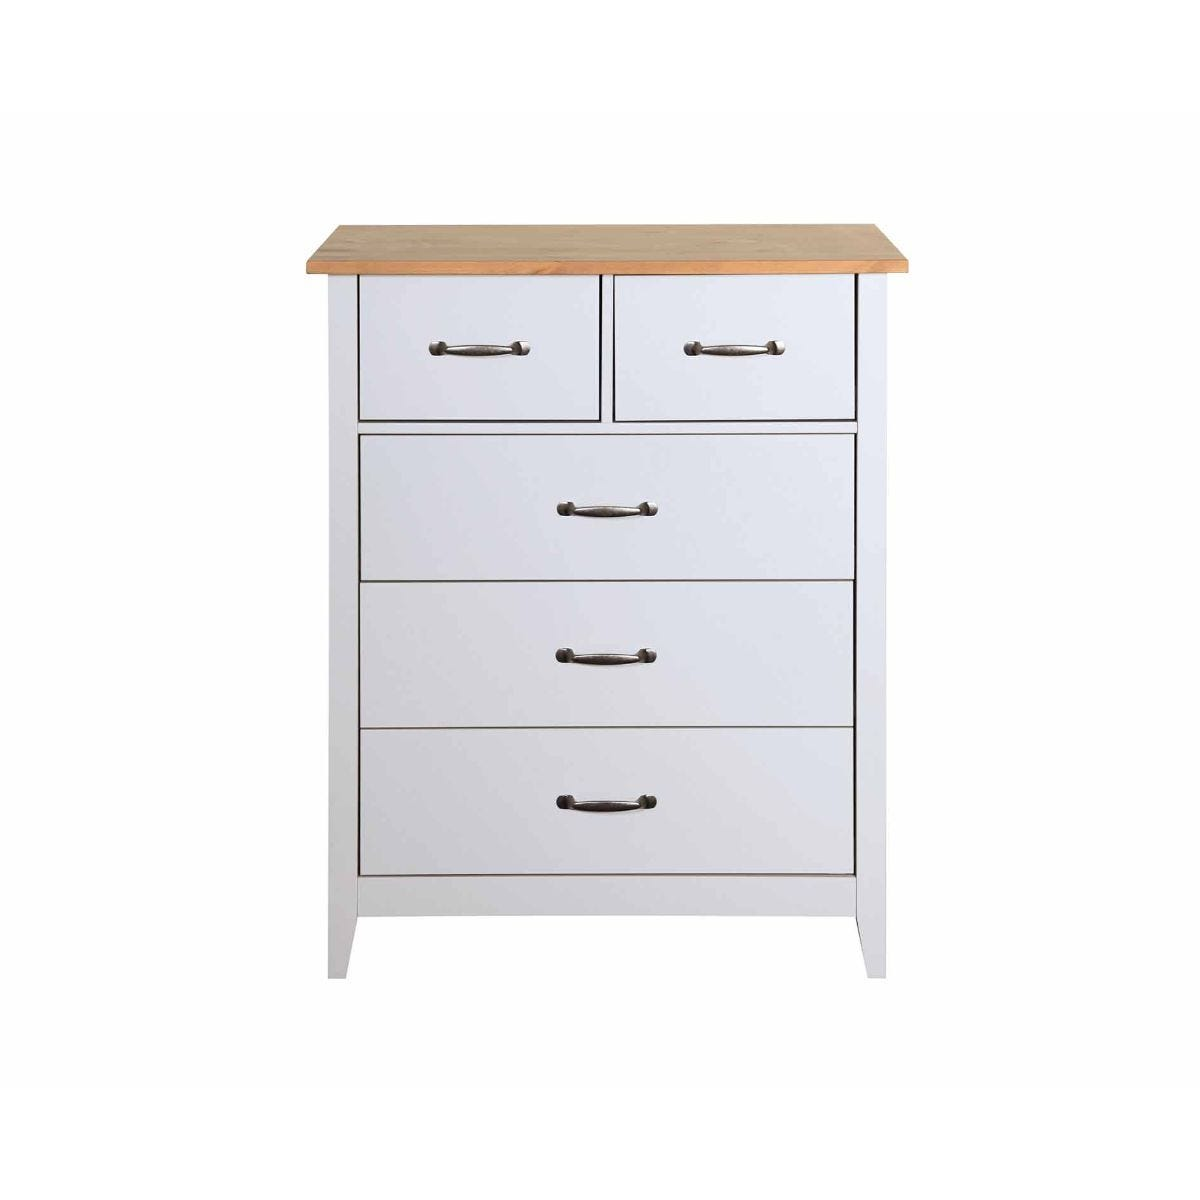 Steens Norfolk 2 Over 3 Drawer Chest Grey and Pine, Grey / Pine